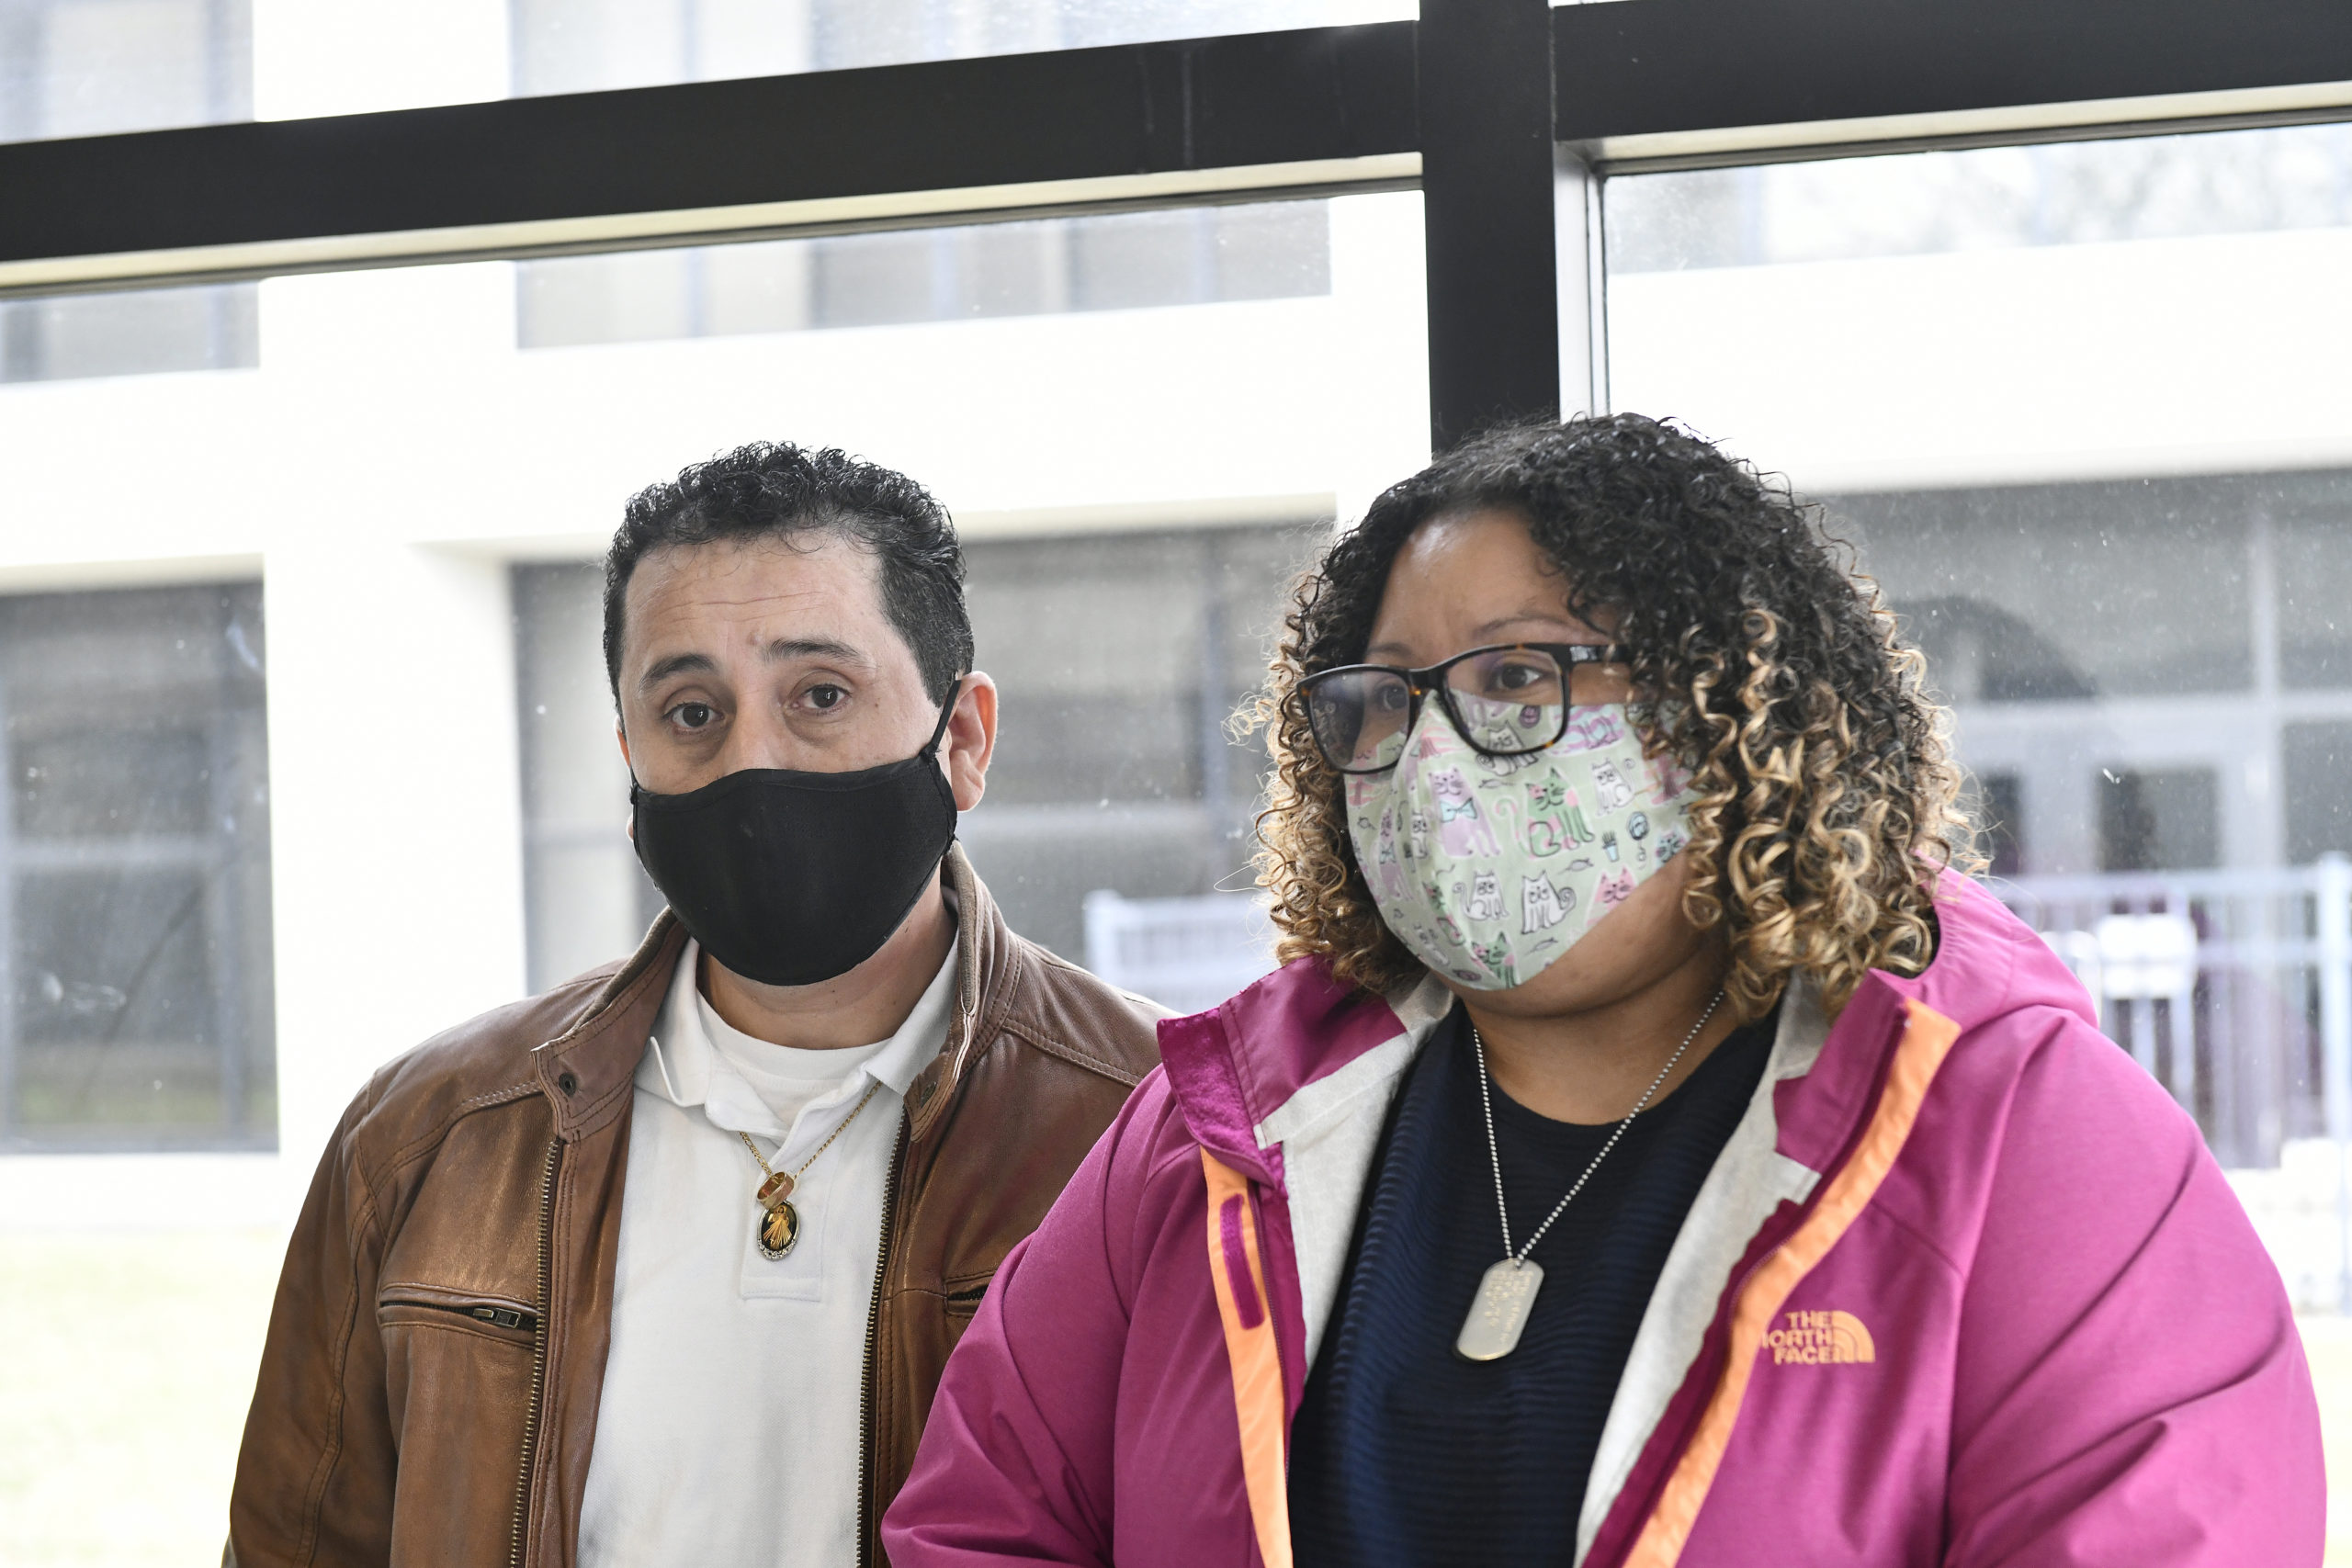 Wilson Murillo, the husband of Yuris Murillo-Cruz with family friend Angelica Marta at the Suffolk County Court on Thursday.   DANA SHAW